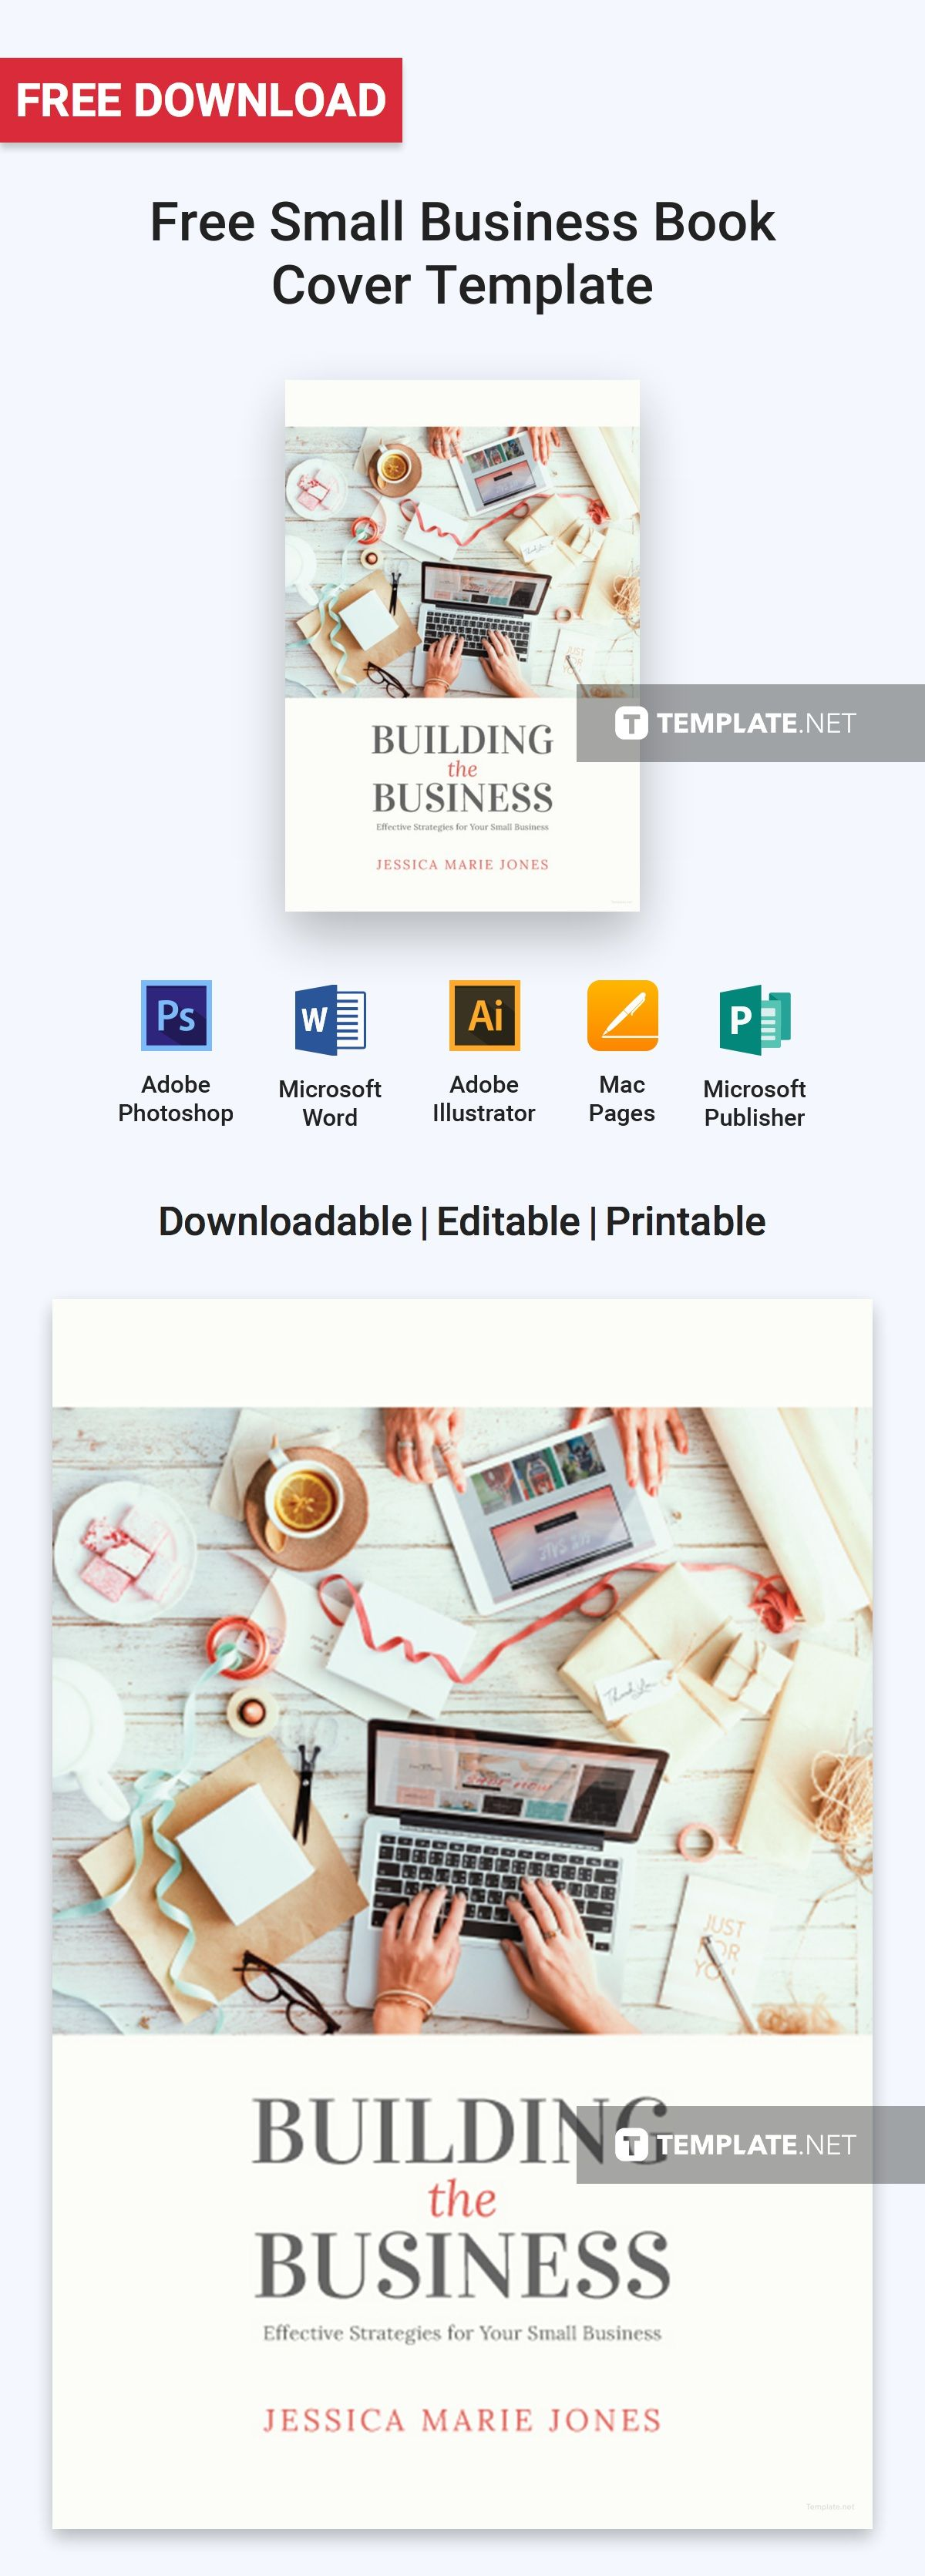 Book Cover Template For Apple Pages ~ Free small business book cover book covers template and business